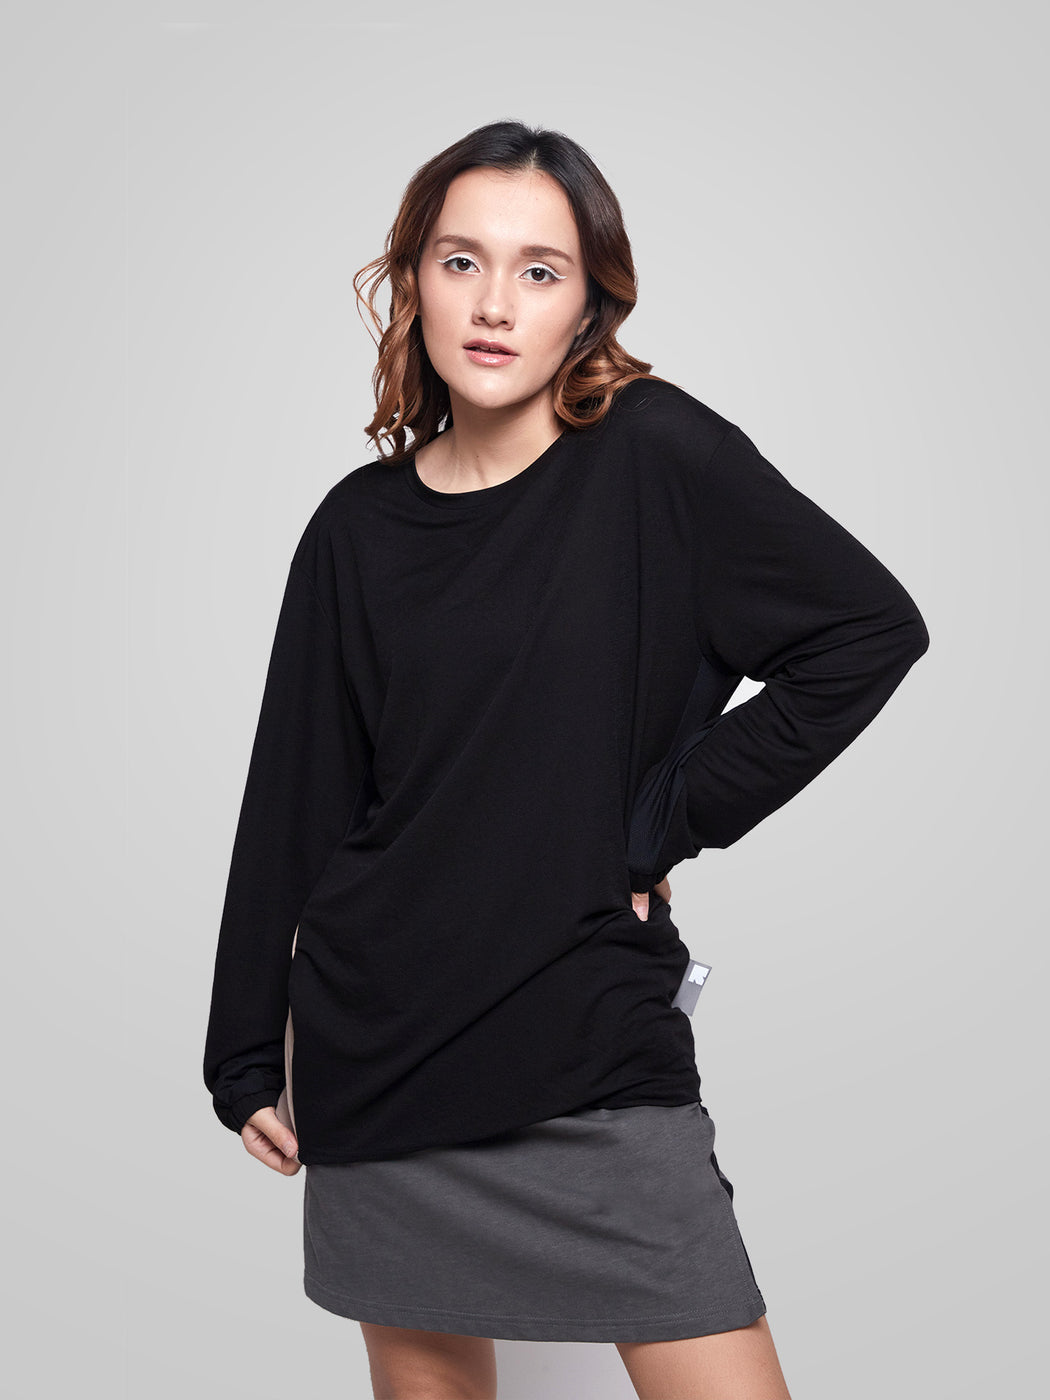 Unisex Essentials Long Sleeves Female T-shirt